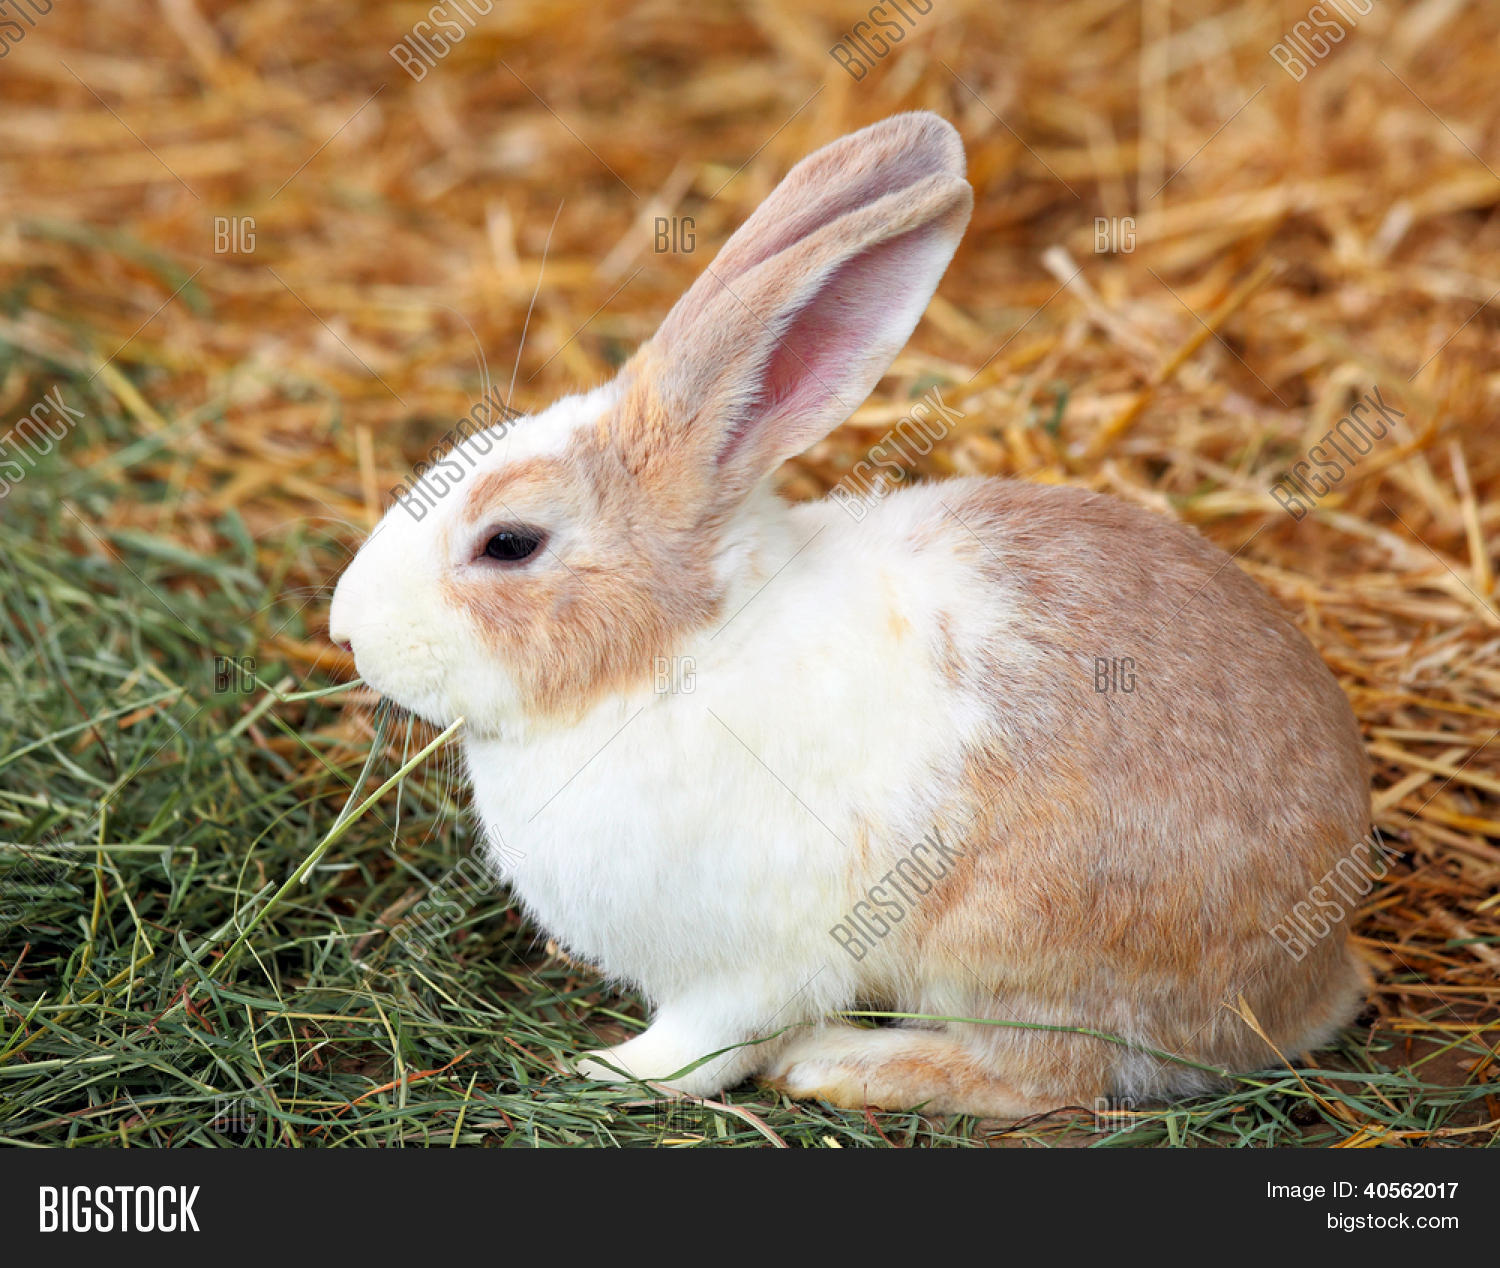 adorable,animal,bunnie,bunny,clean,countryside,curiosity,curious,cute,daisy,domestic,dots,ear,easter,egg,farm,fluffy,funny,fur,furry,grass,green,hare,holiday,hopping,huge,little,long,lop,meadow,nature,outdoor,outside,pet,rabbit,rodent,soft,spring,springtime,sweet,tame,thumper,white,young